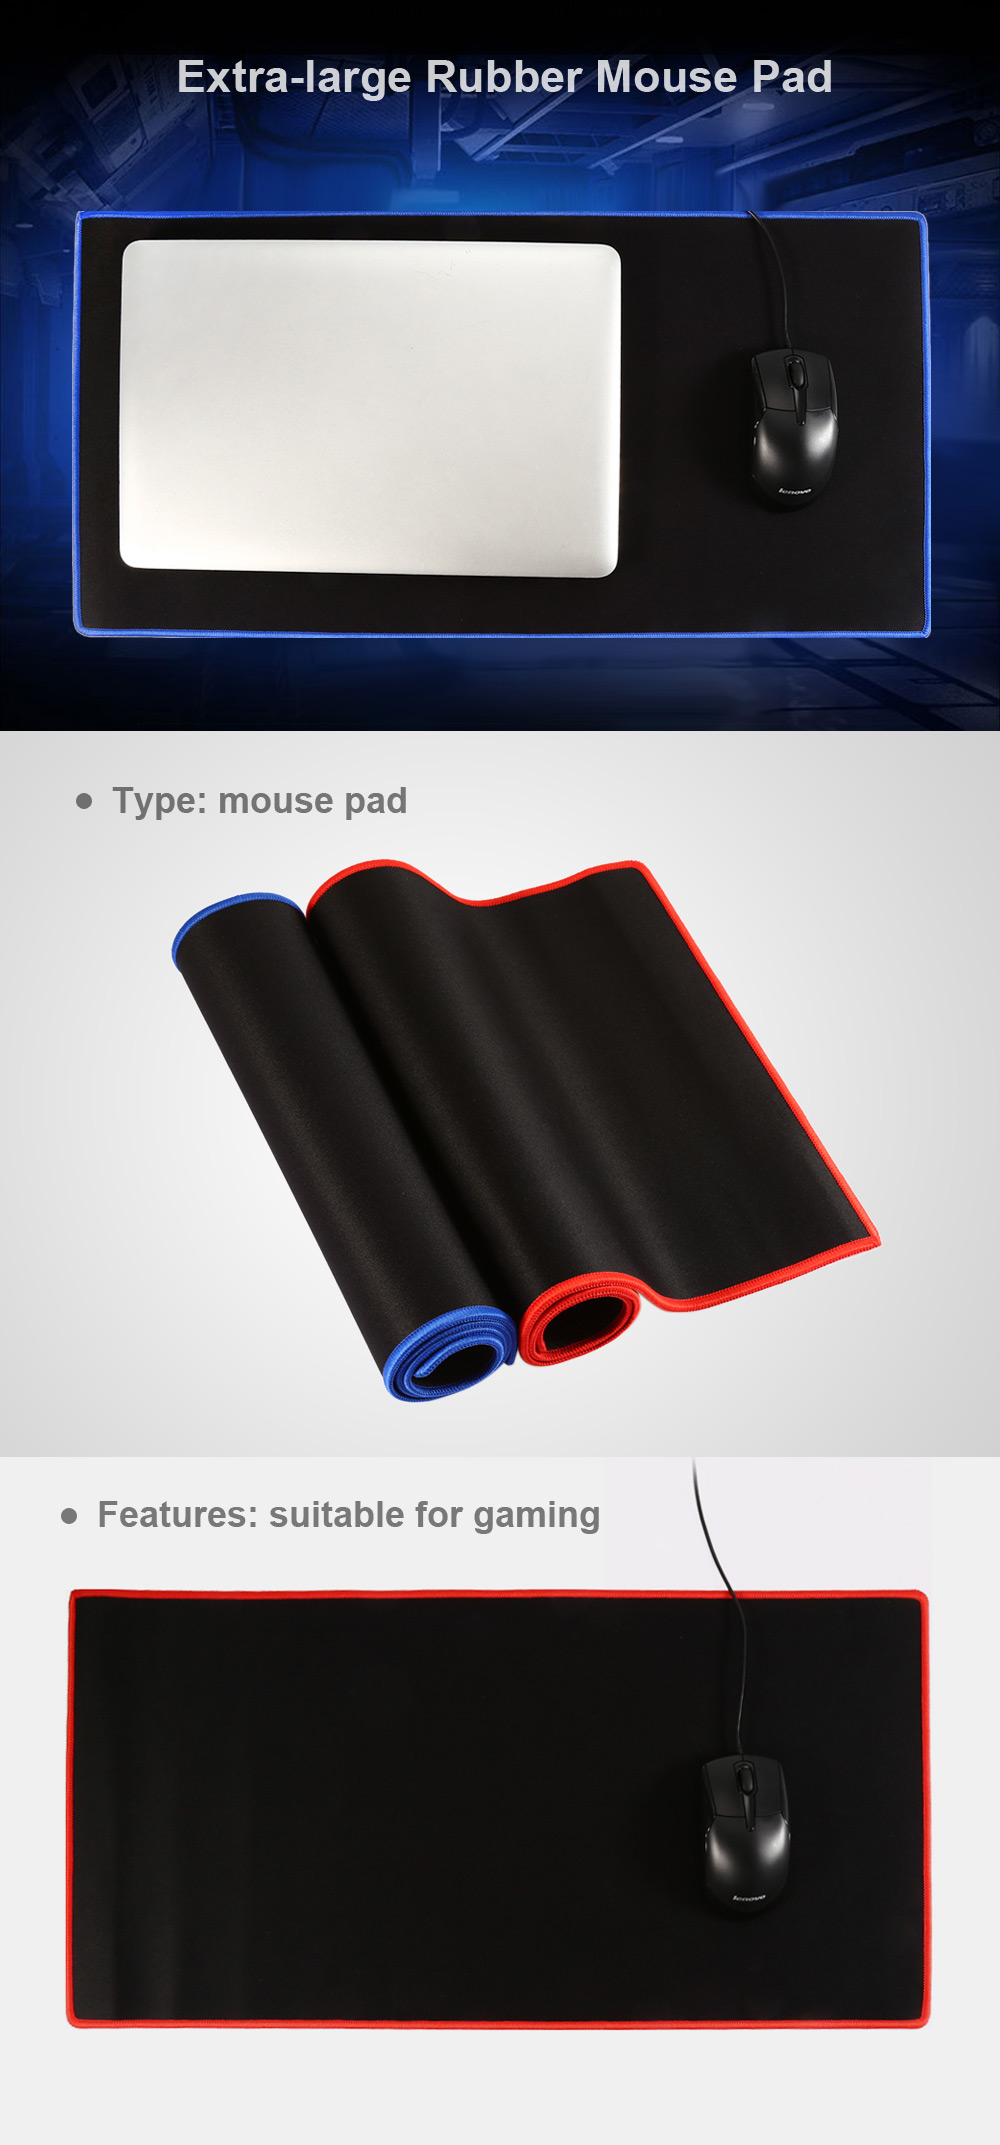 Extra-large Mouse Pad Skid Resisting Protecting Item